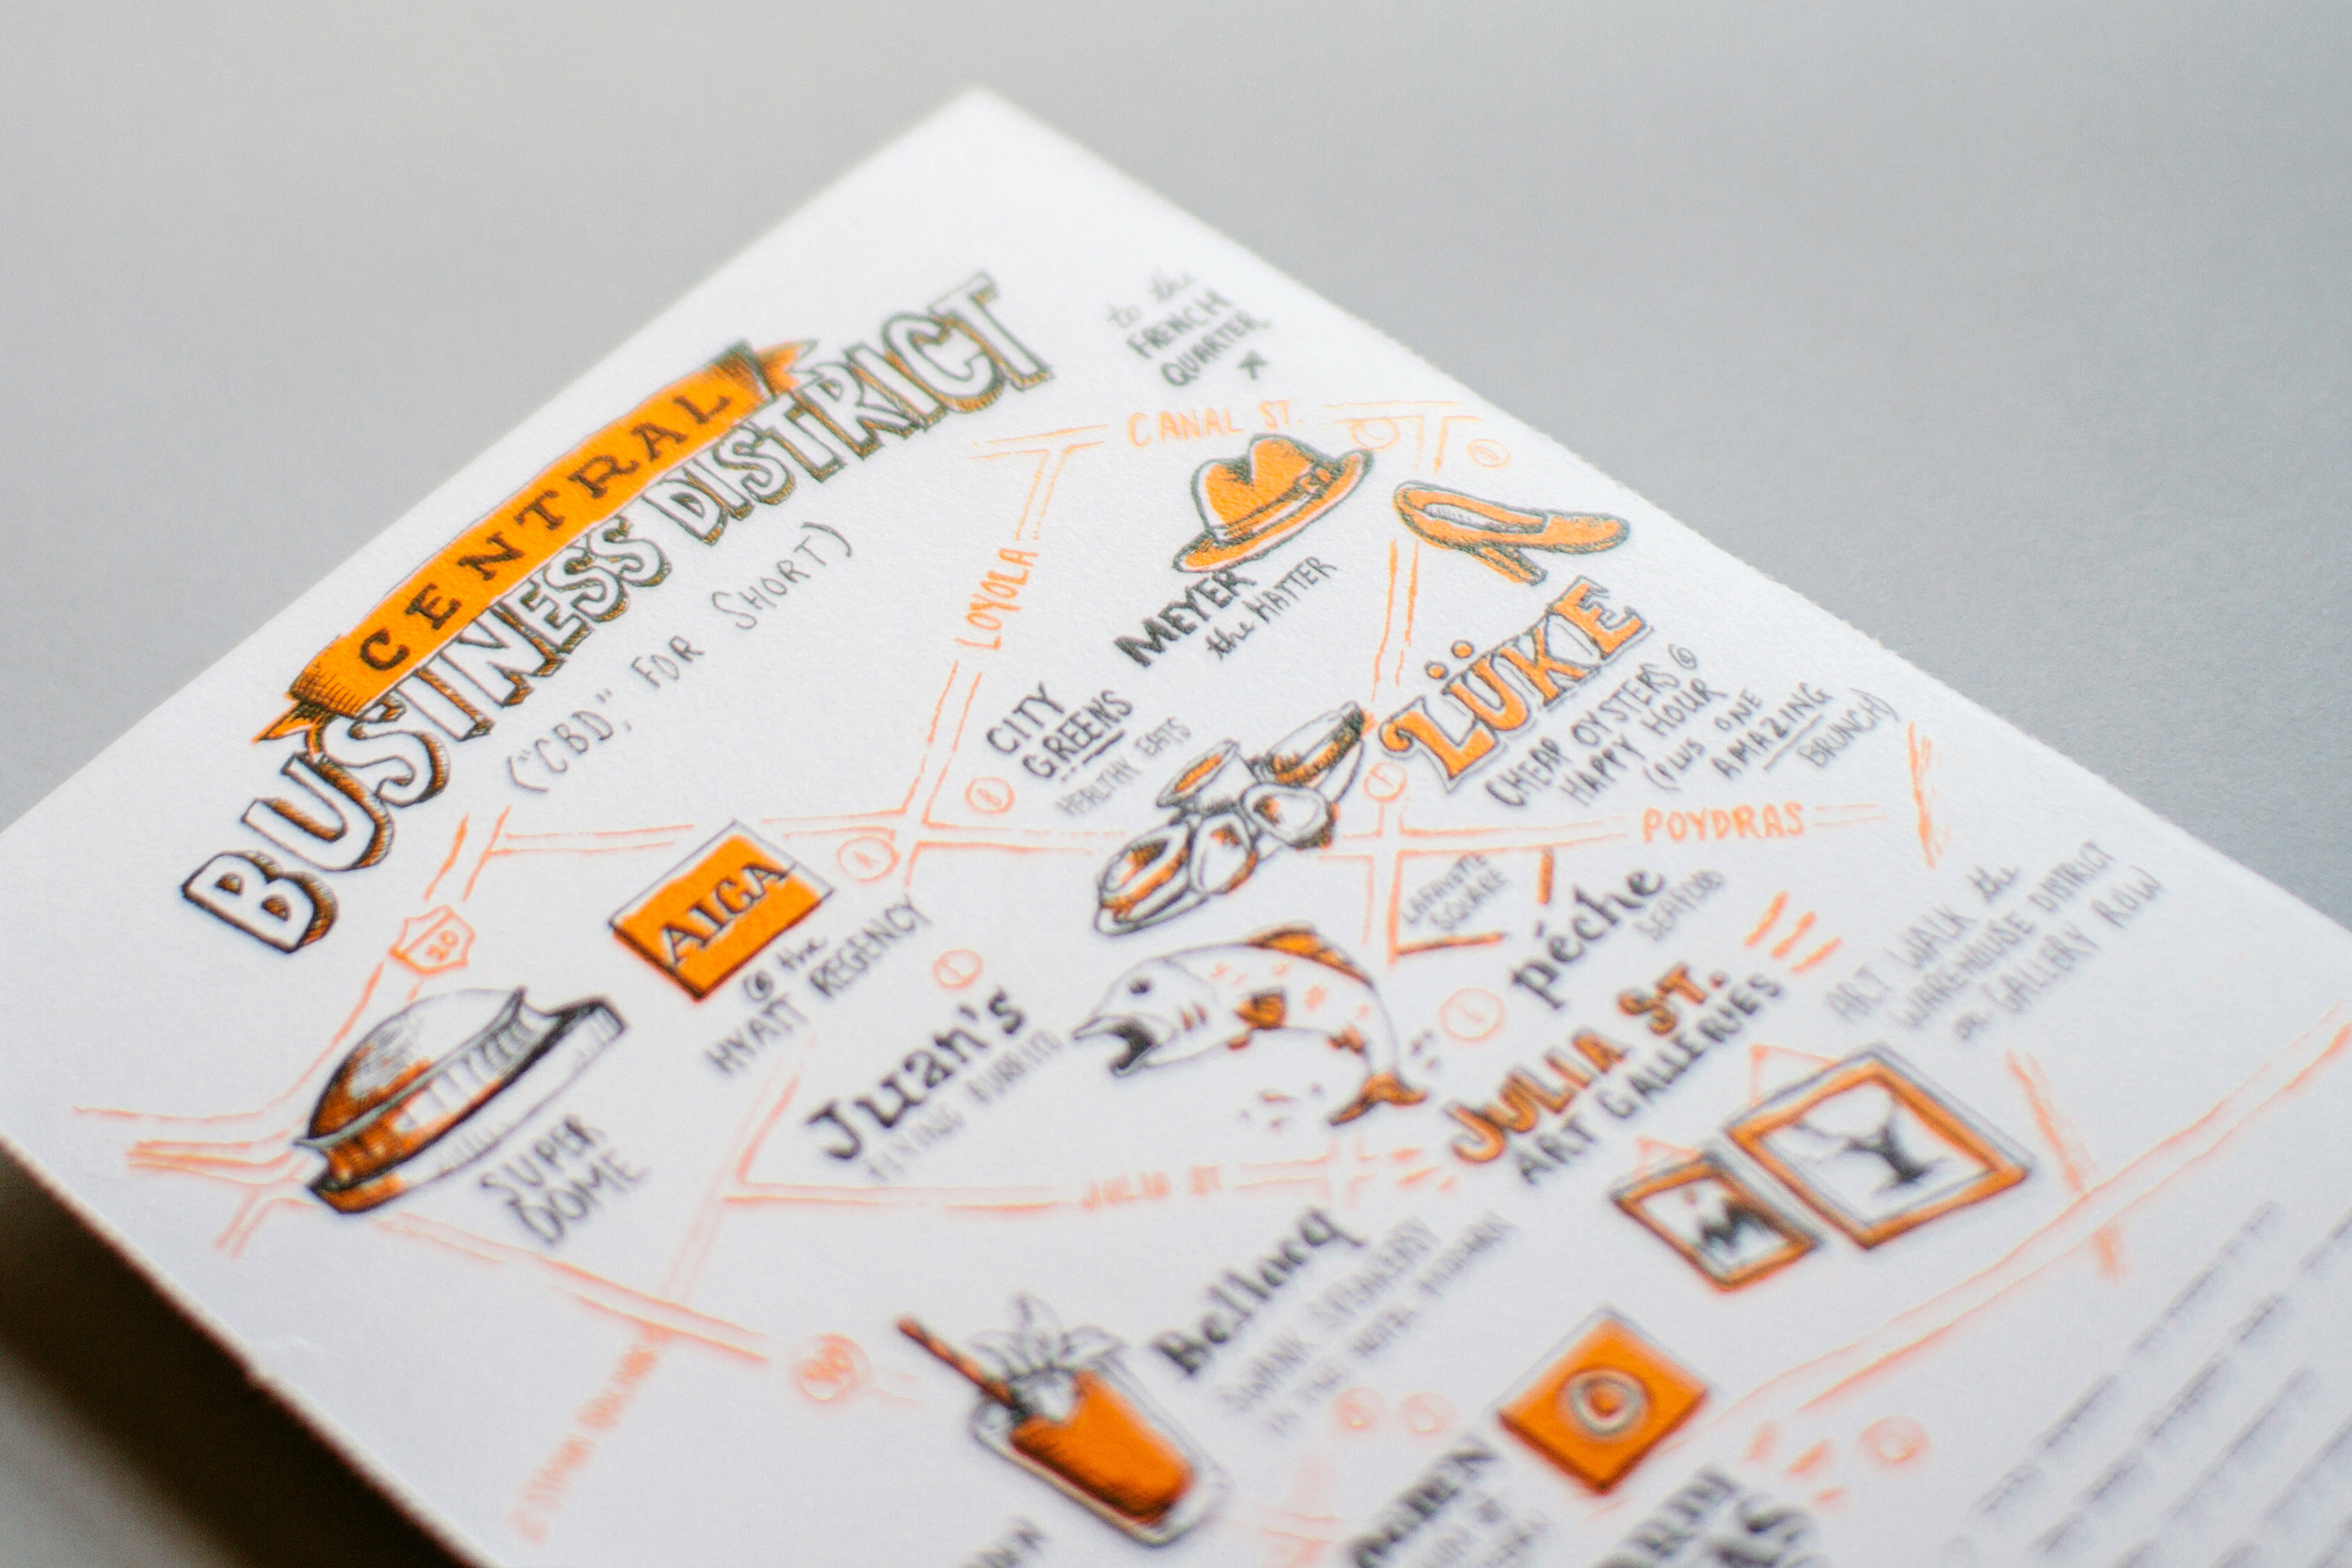 detail photo of Central Business District illustrated map